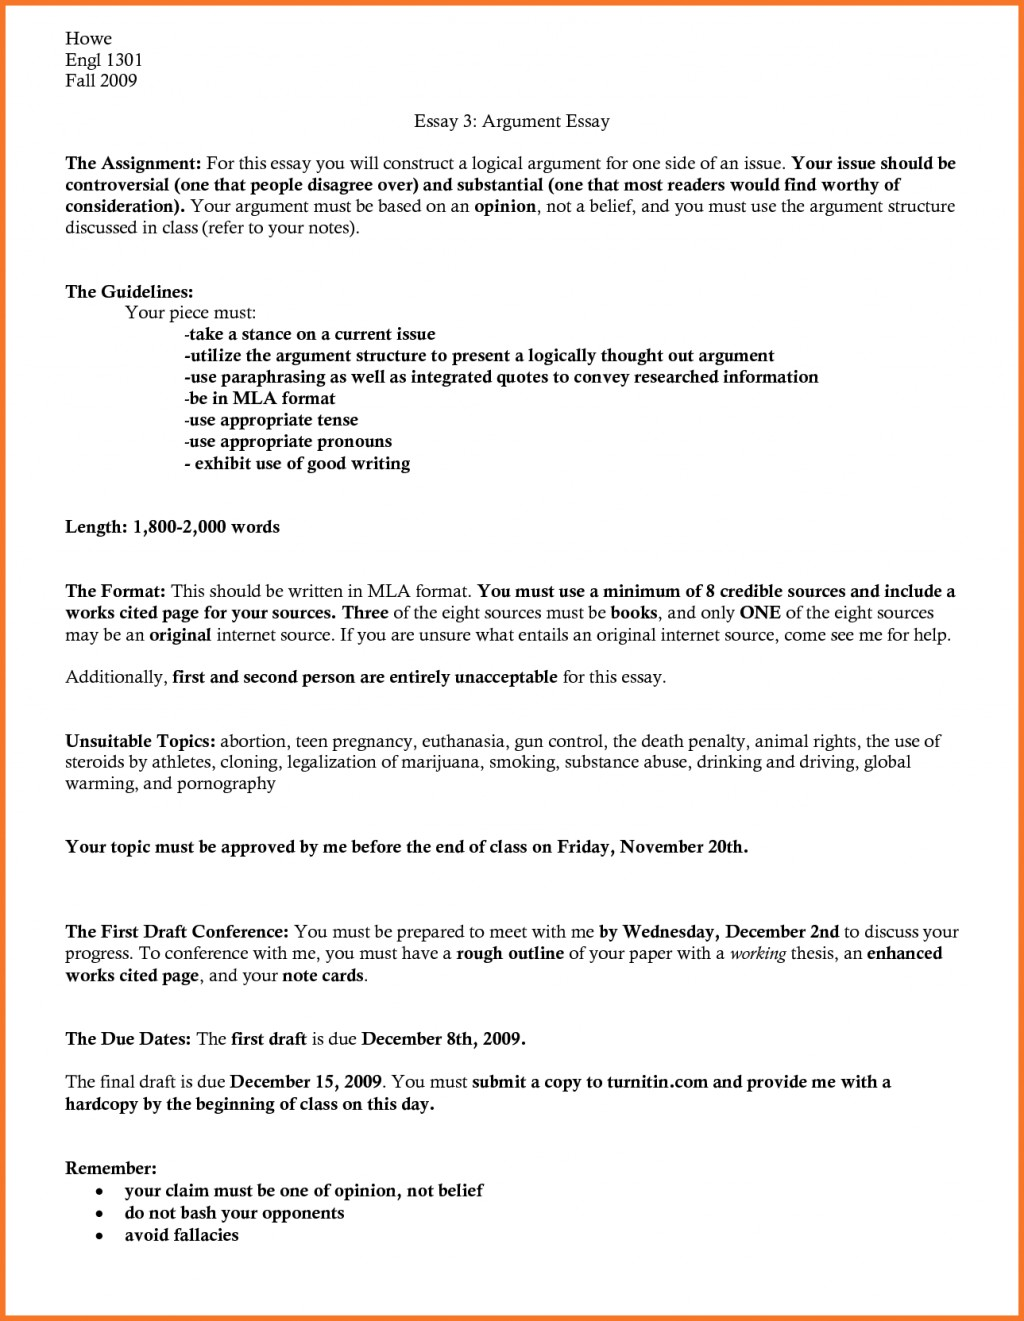 018 Mla Format Research Essay Outline Paper Ideas Of Awesome Template Large